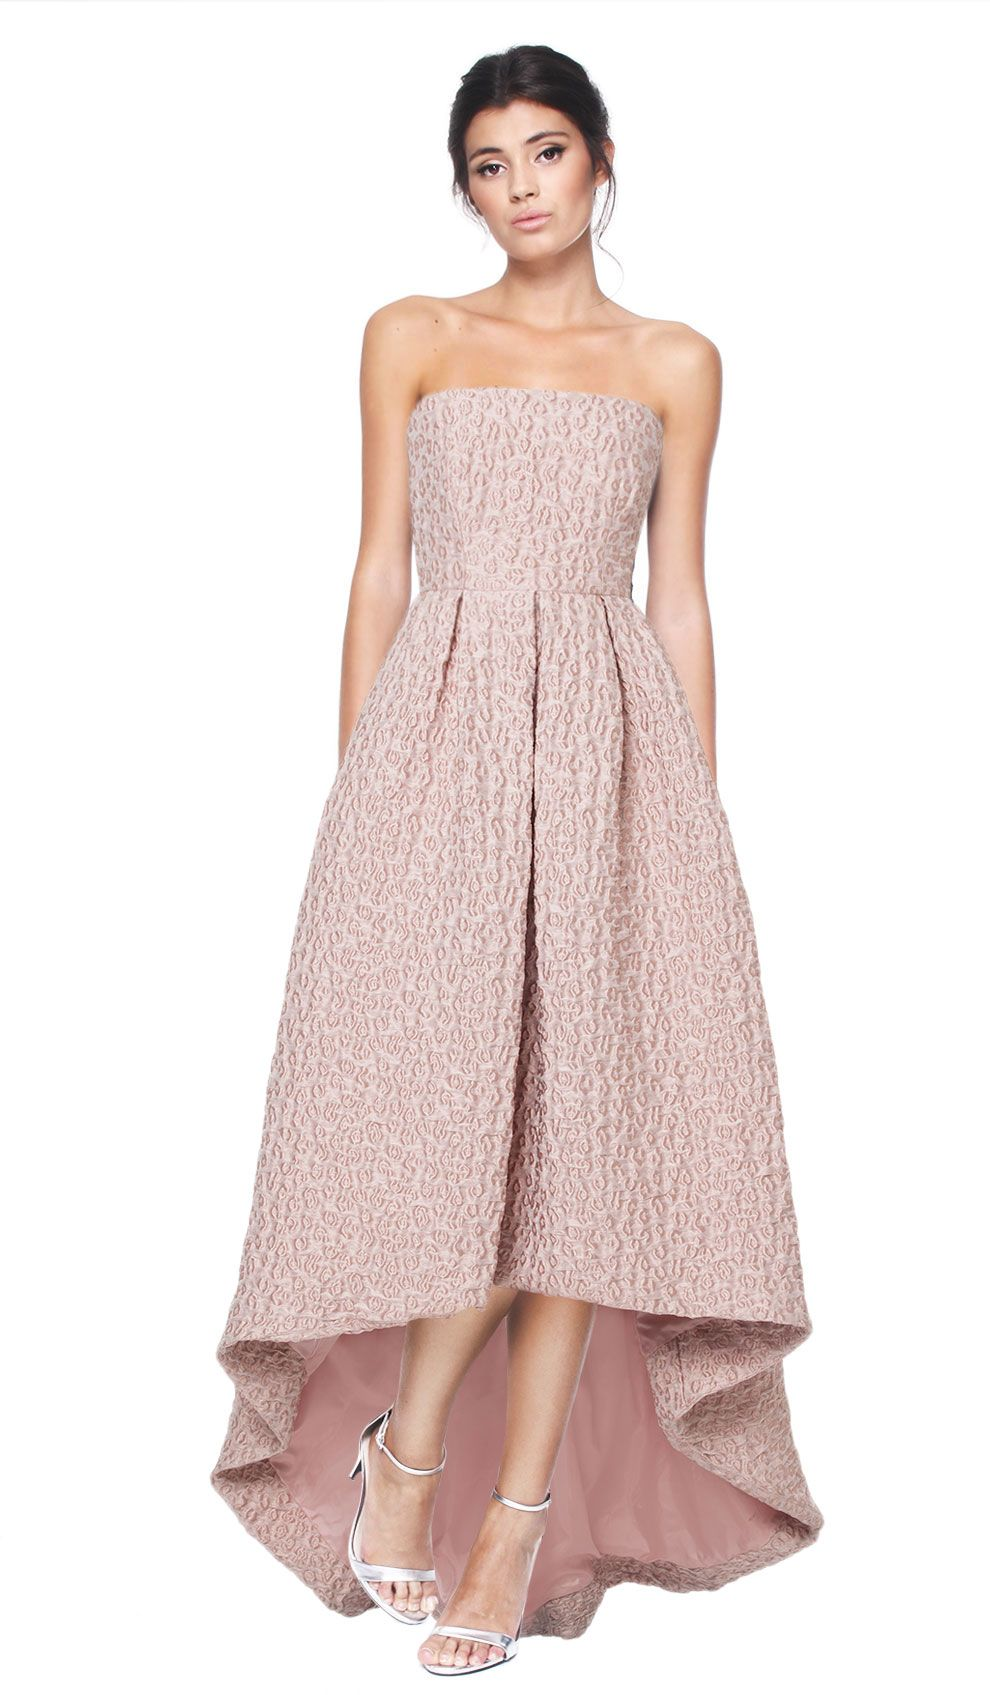 Bridesmaid dresses hire image collections braidsmaid dress strapless dusty rose dress hire cynthia rowley front high low hire a dress with gorgeous jacquard ombrellifo Image collections